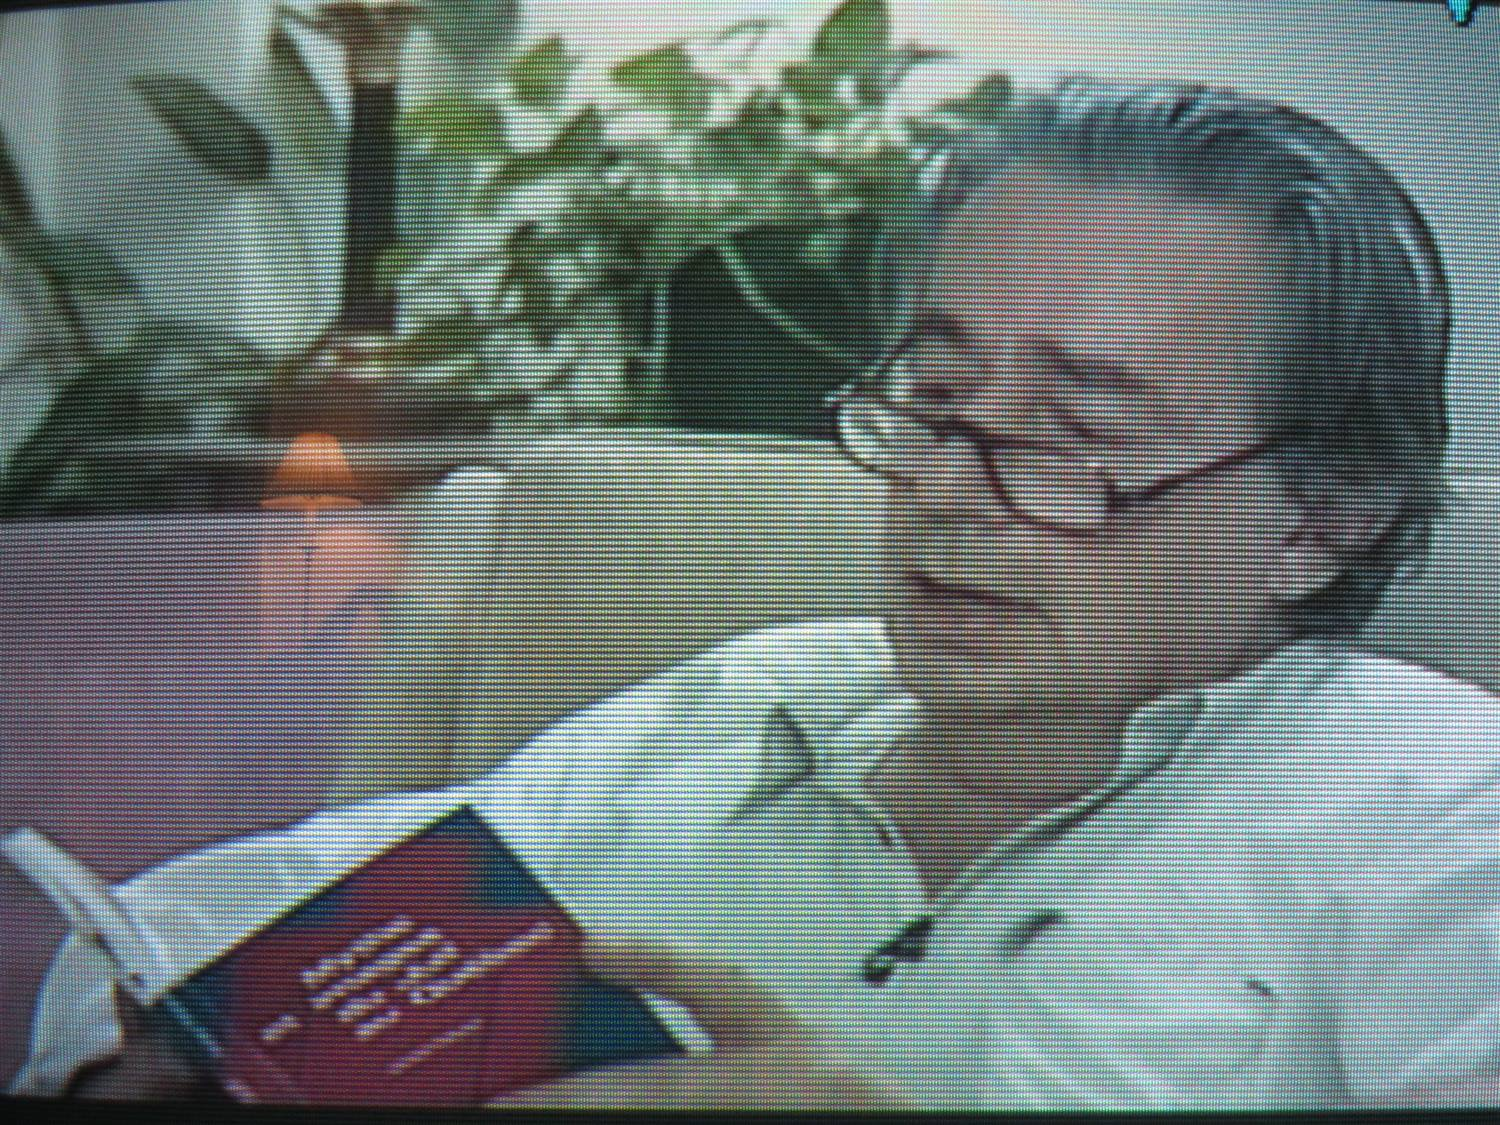 mordecai richler essays Belling the cat: essays, reports & opinions and over one million other books are available for amazon kindle learn more mordecai richler was.